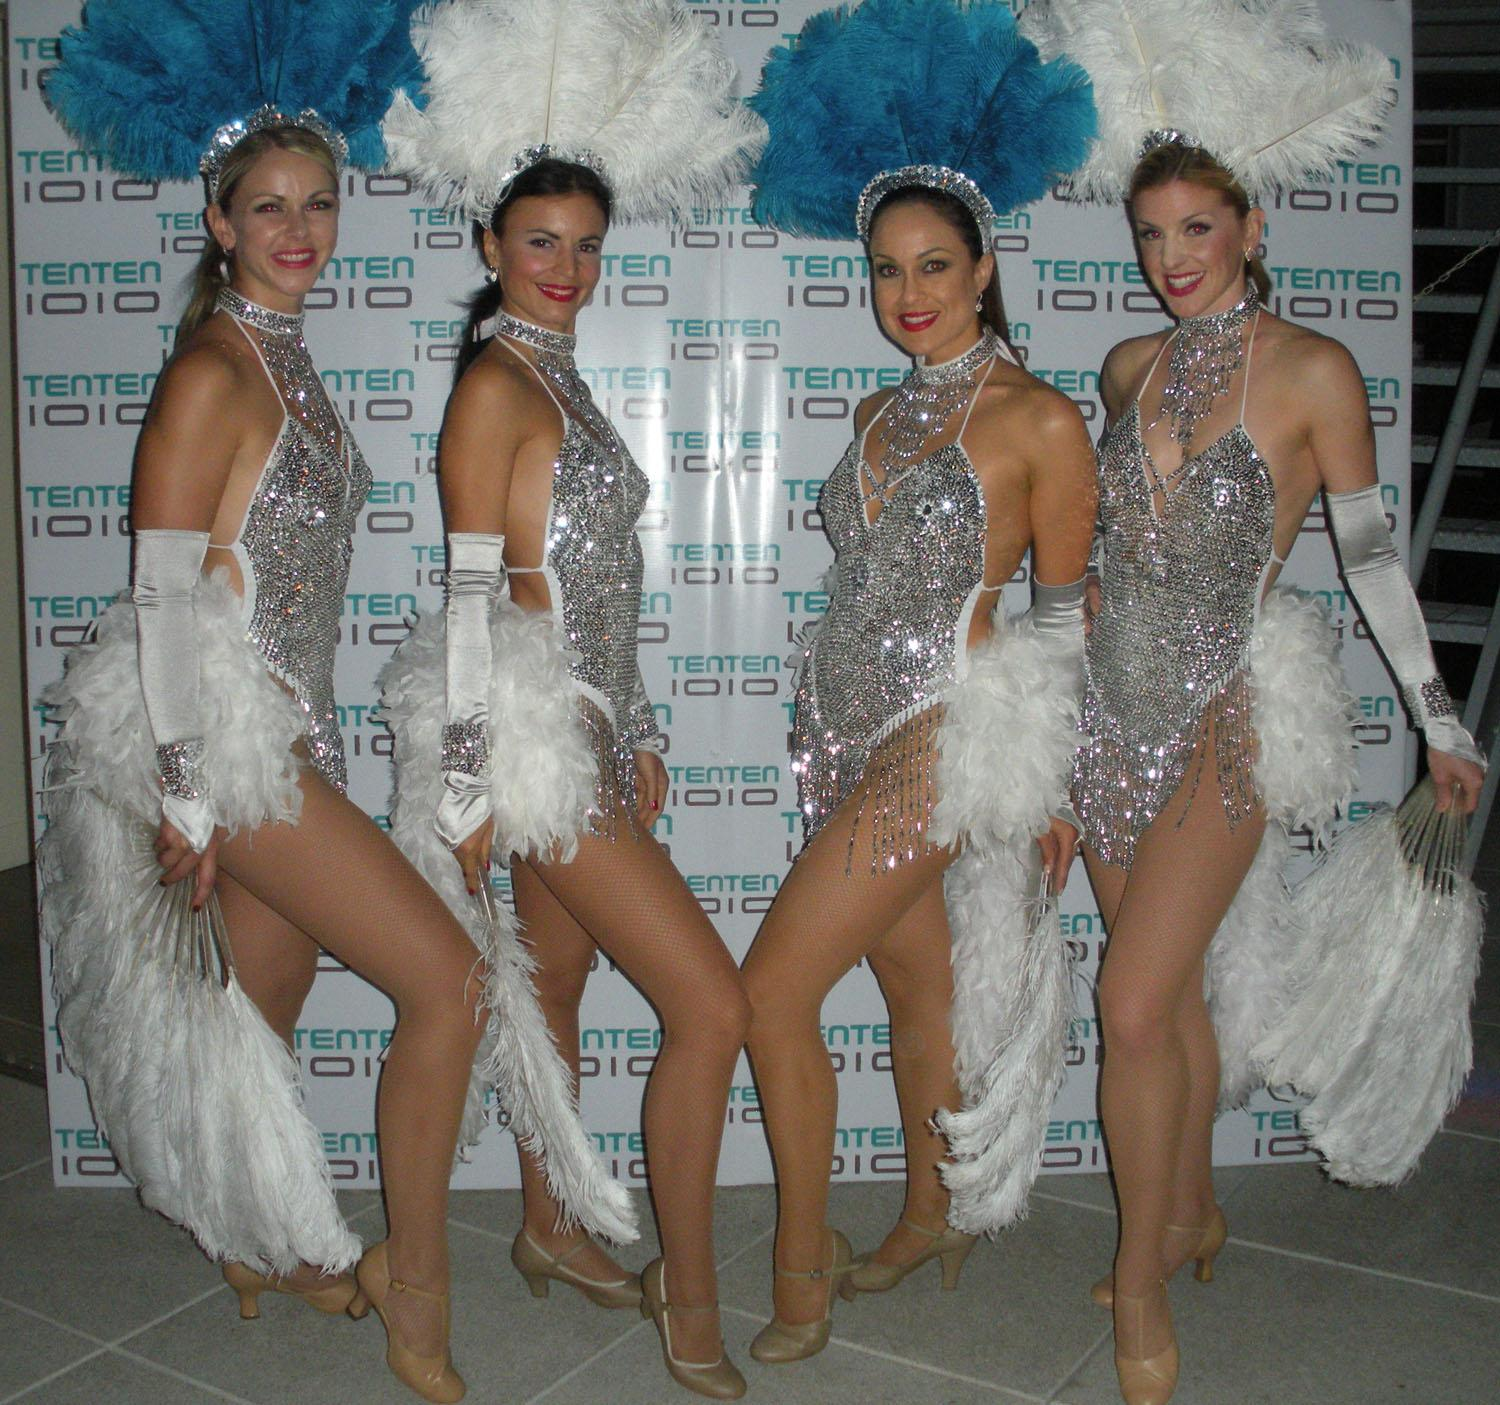 Silver - Vegas Showgirls